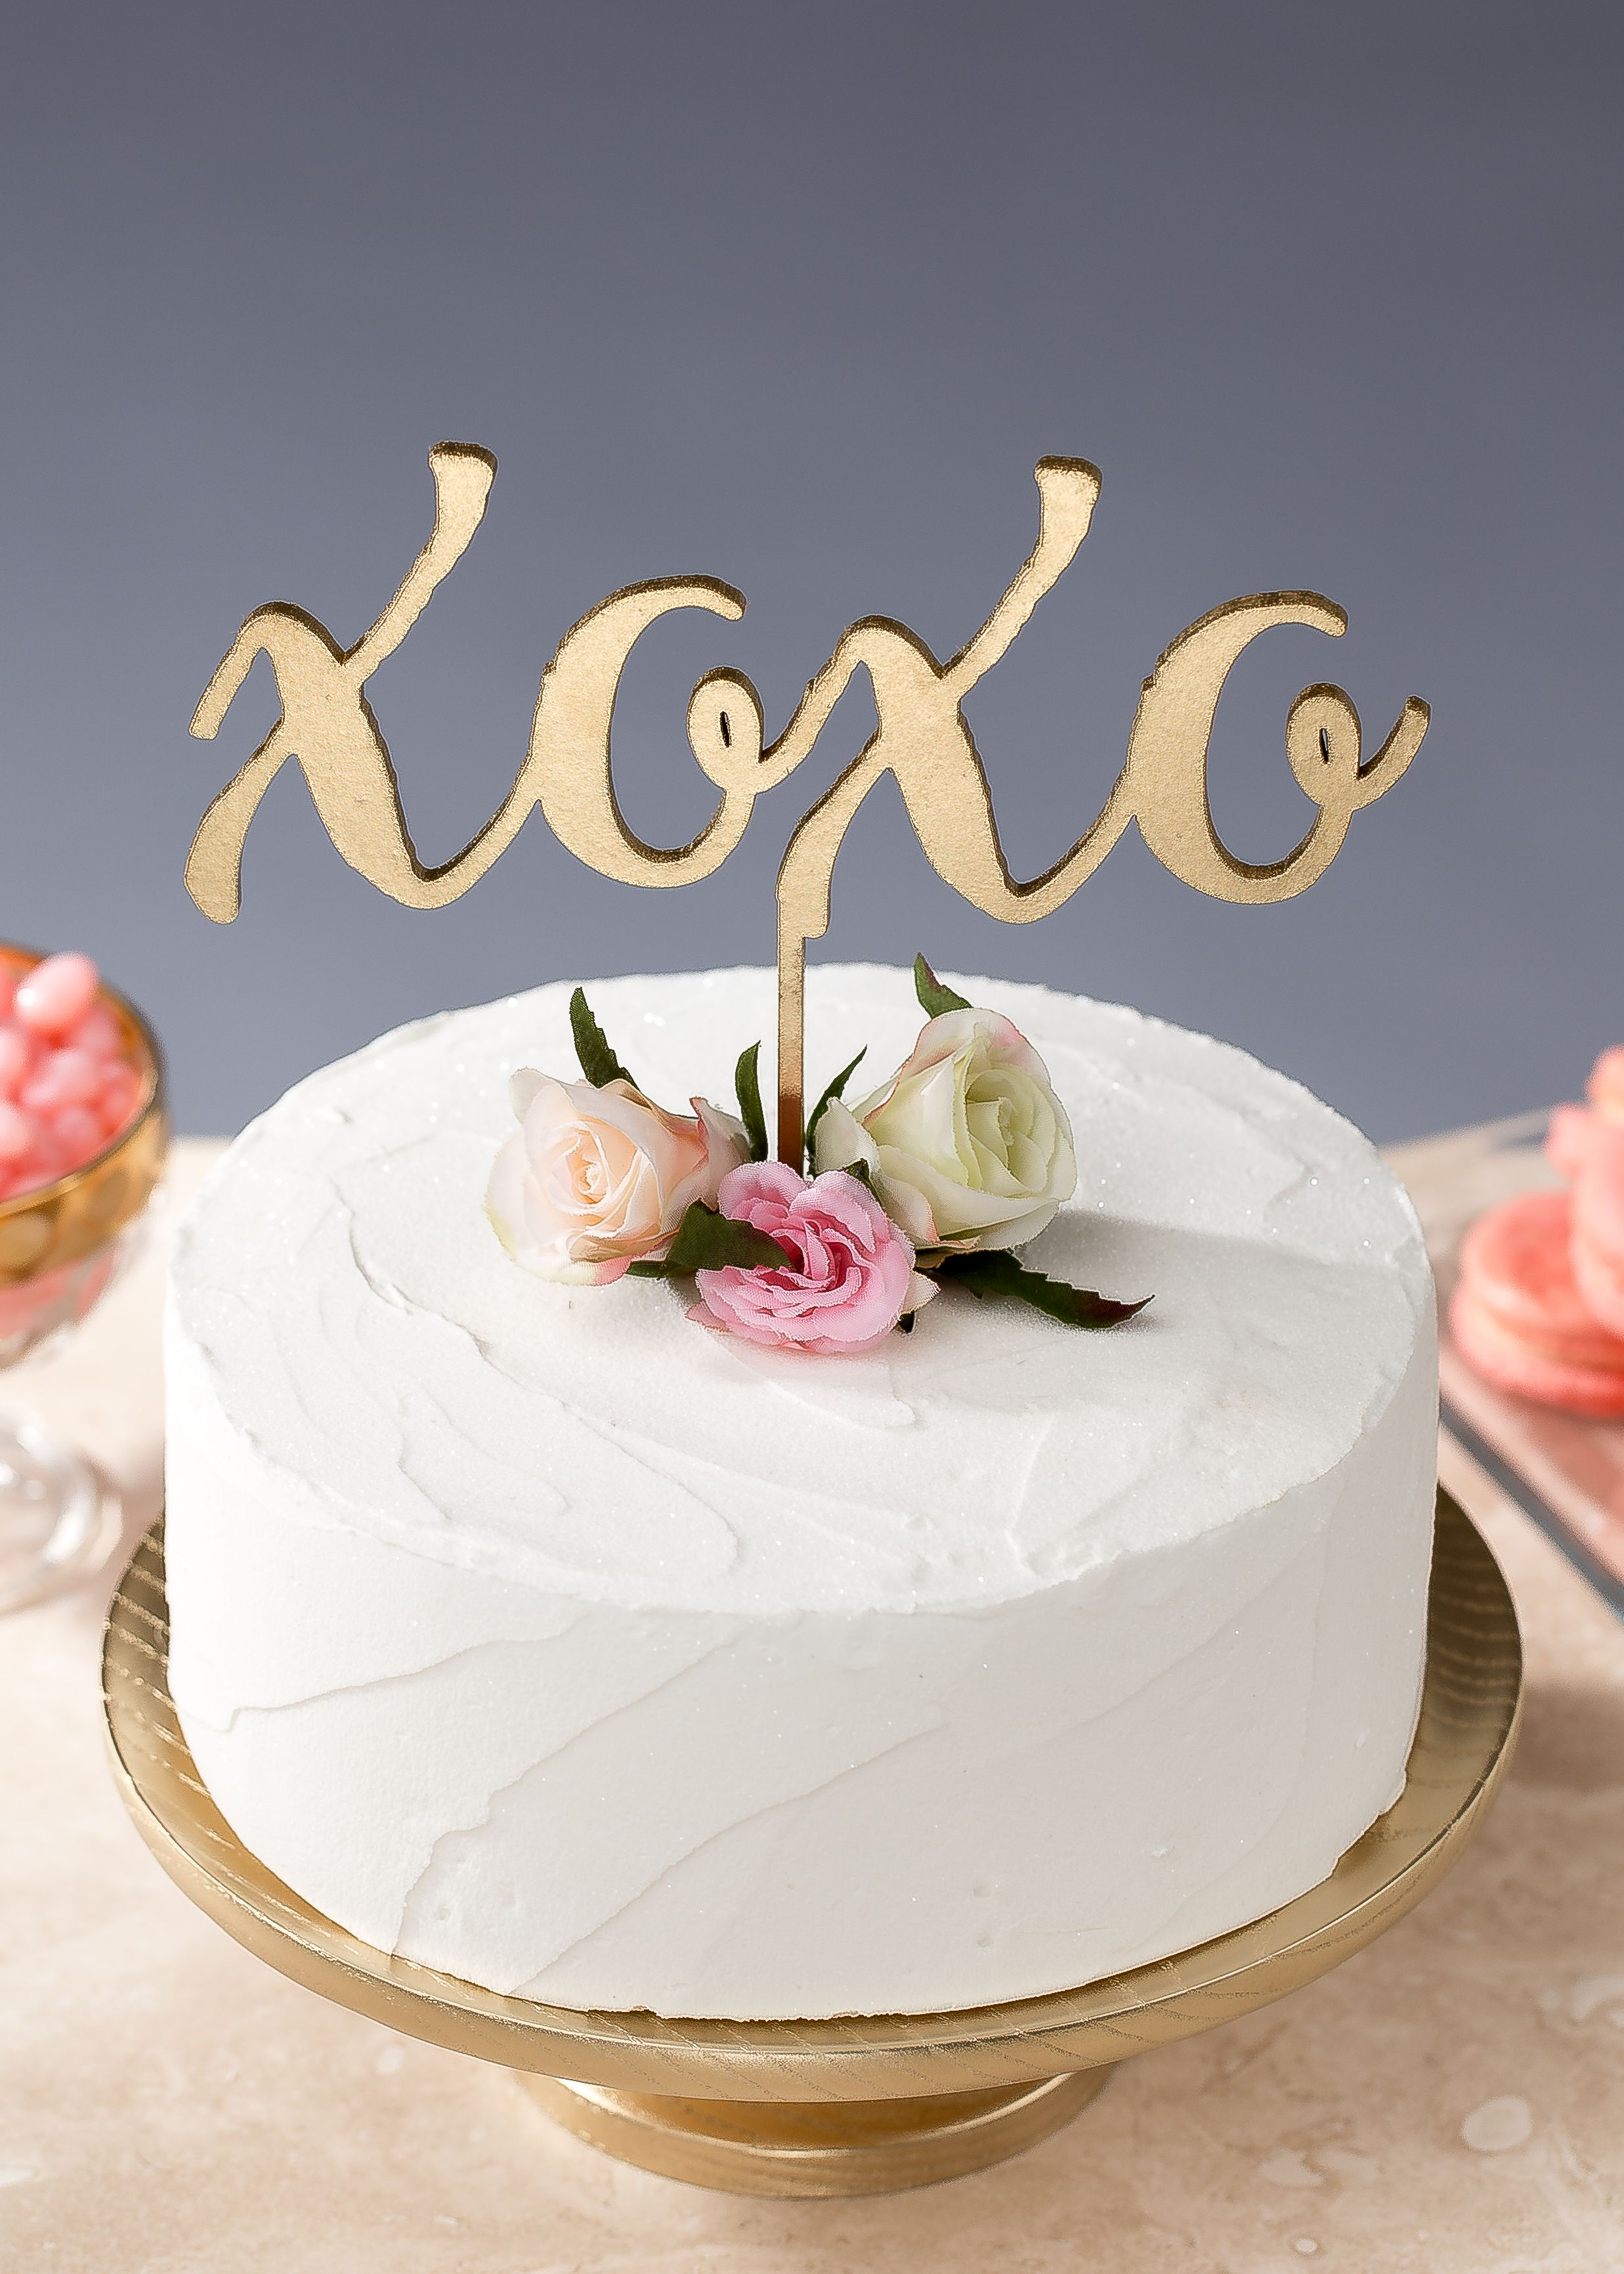 Xoxo Wedding Cake Topper By Better Off Wed On Etsy Caketopper Cake Creative Cakes Cake Toppers